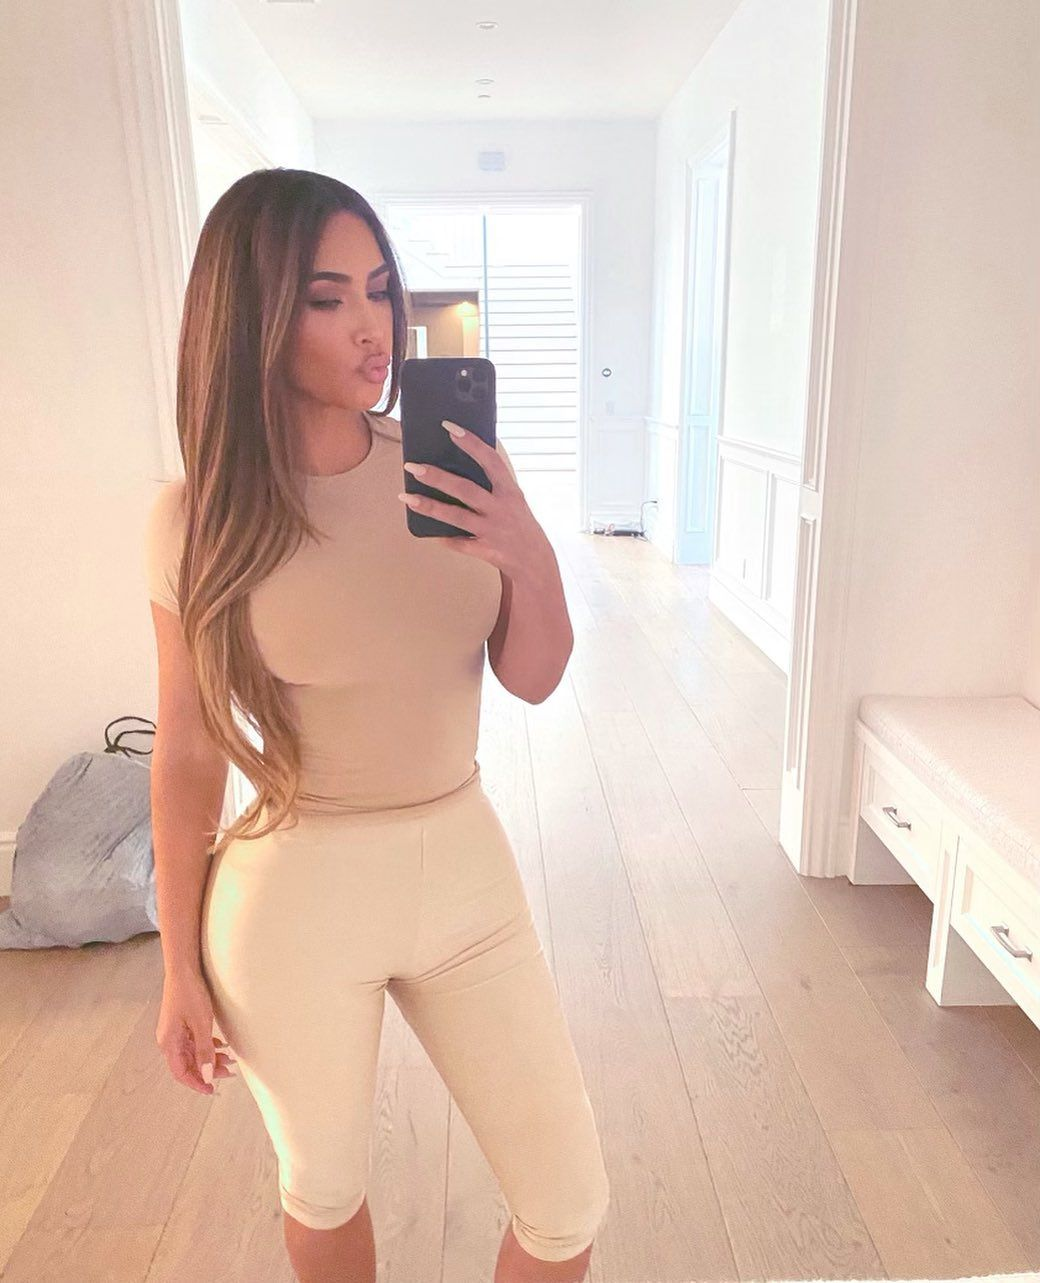 A photo of Kim Kardashian taking a phone selfie in a white pant and brown blouse.